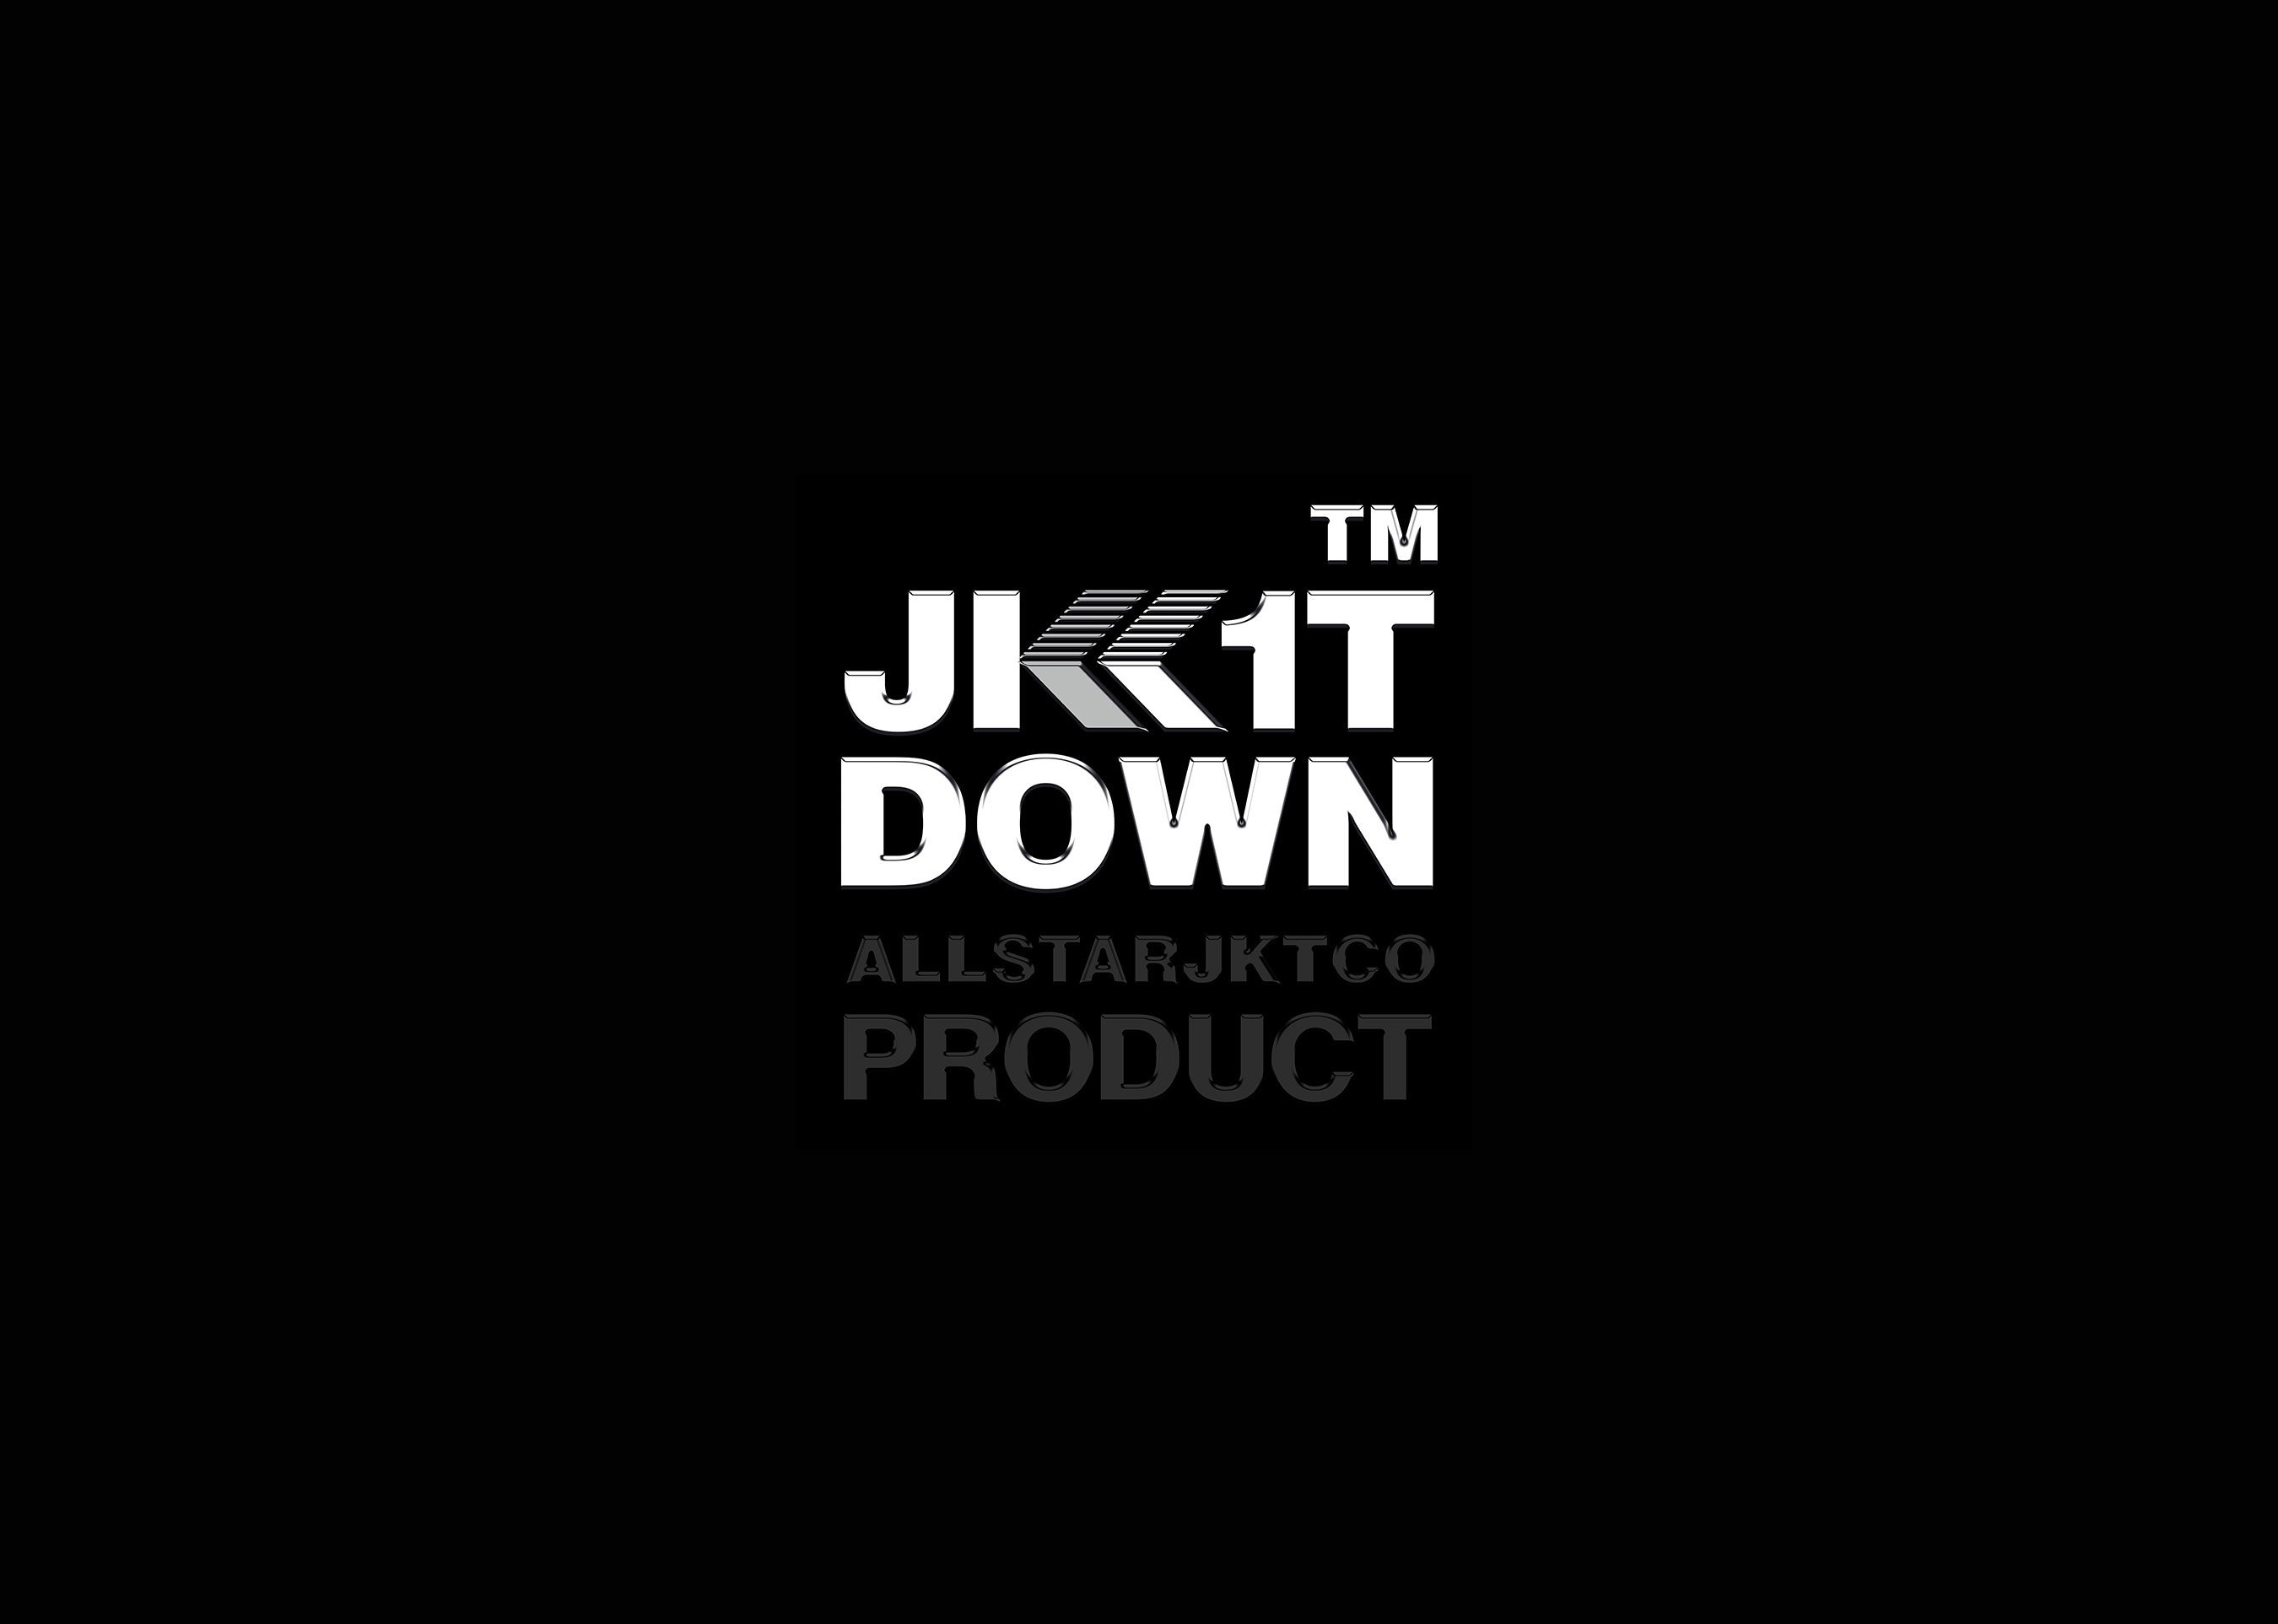 Jack1t™ Down (HOMME)